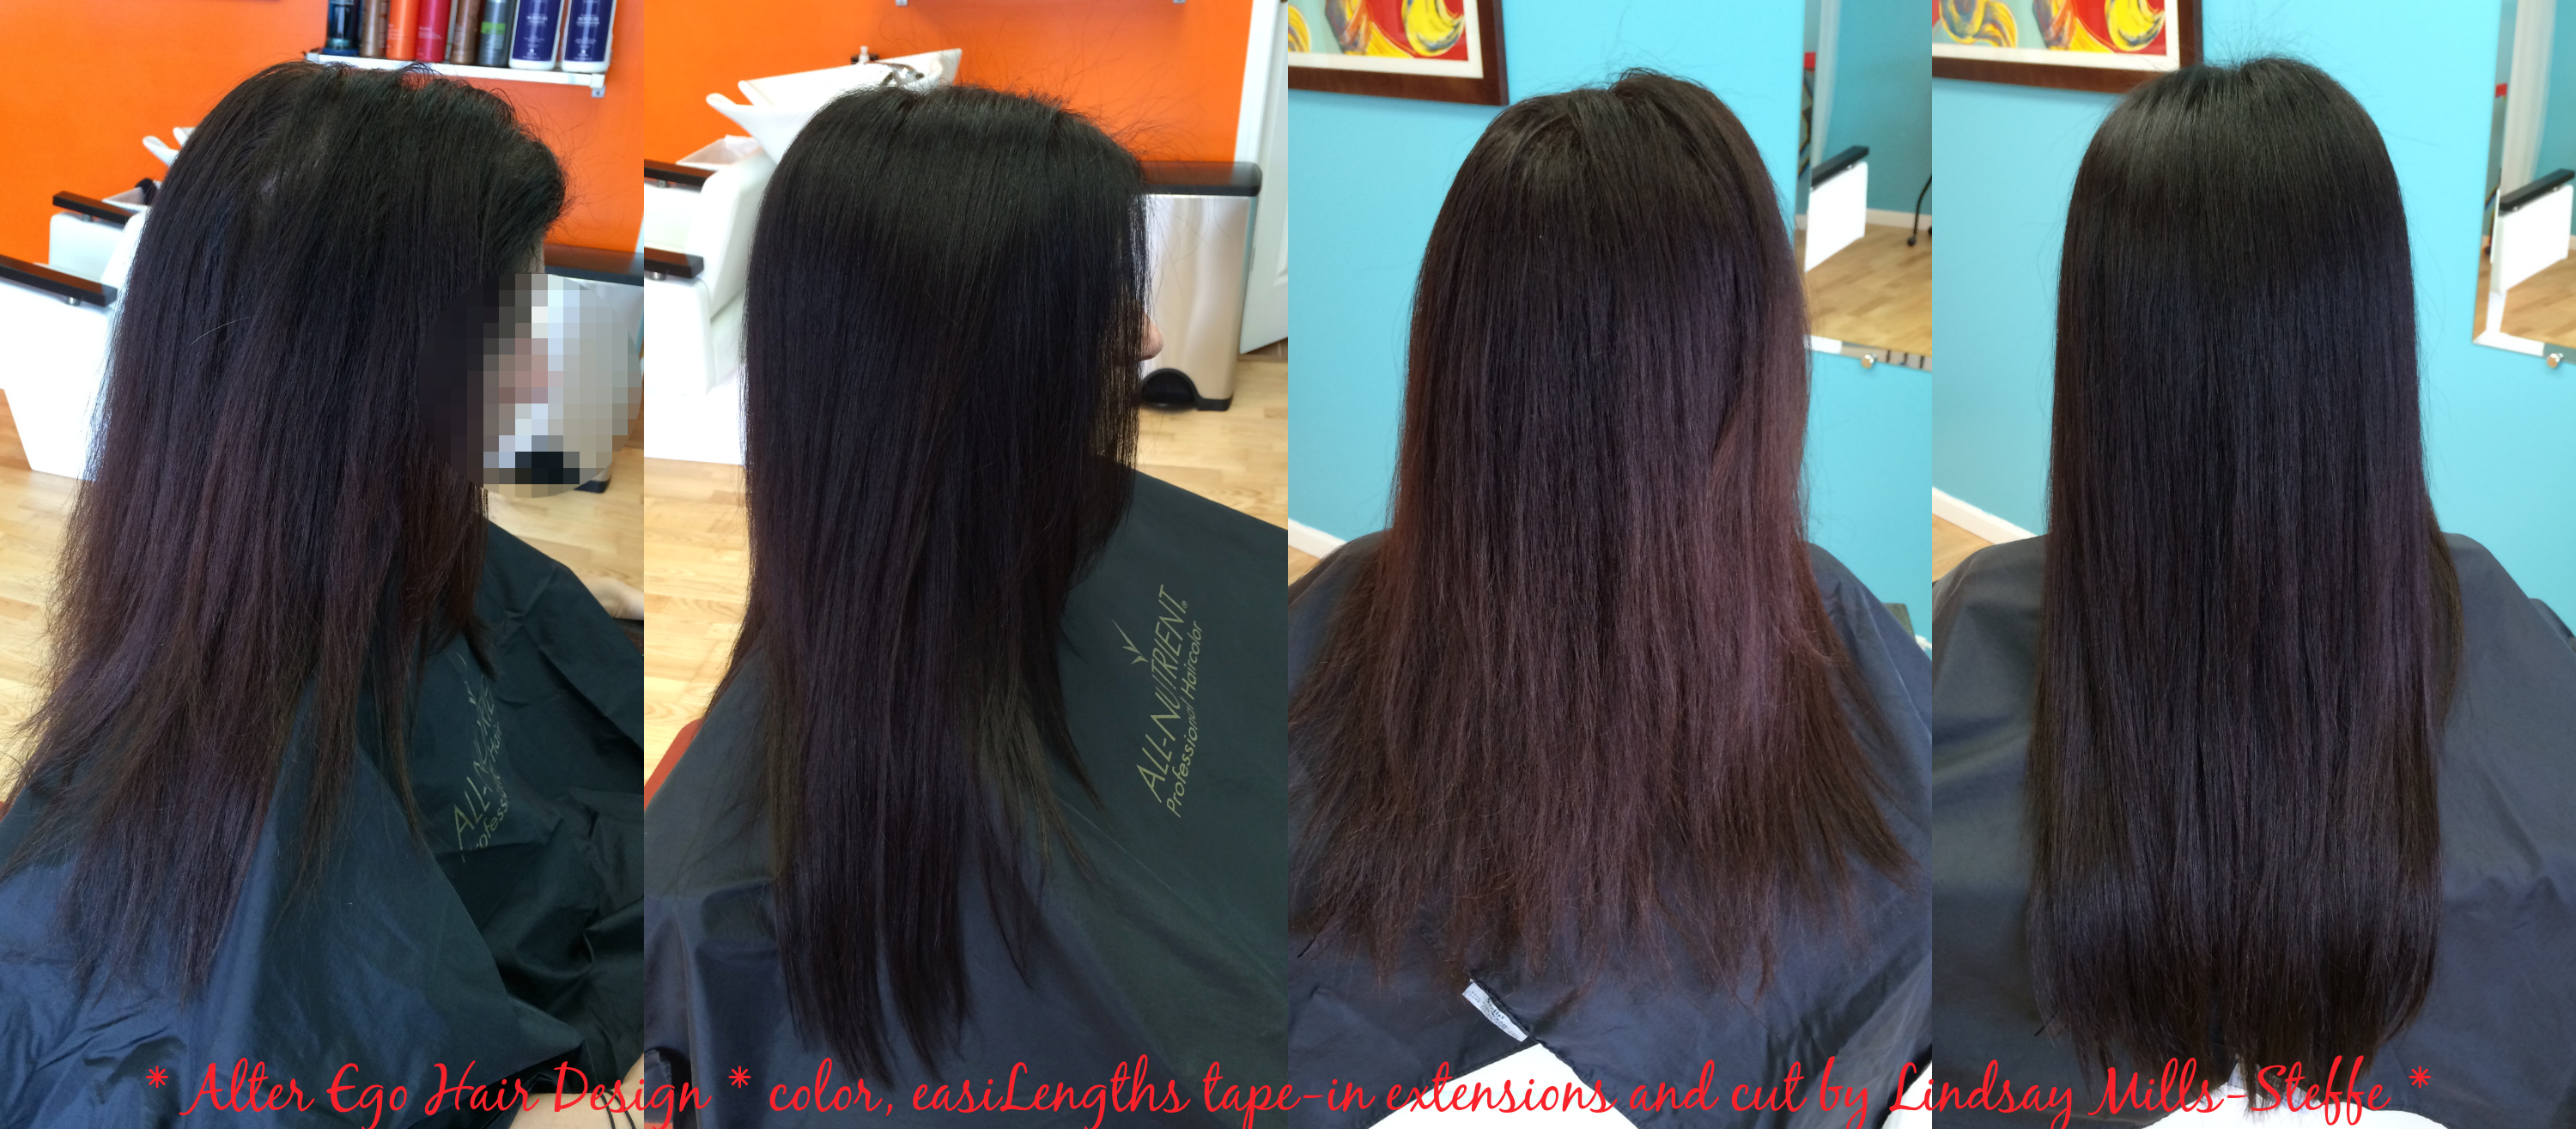 Try the best hair extensions for thin hair in Chicago!